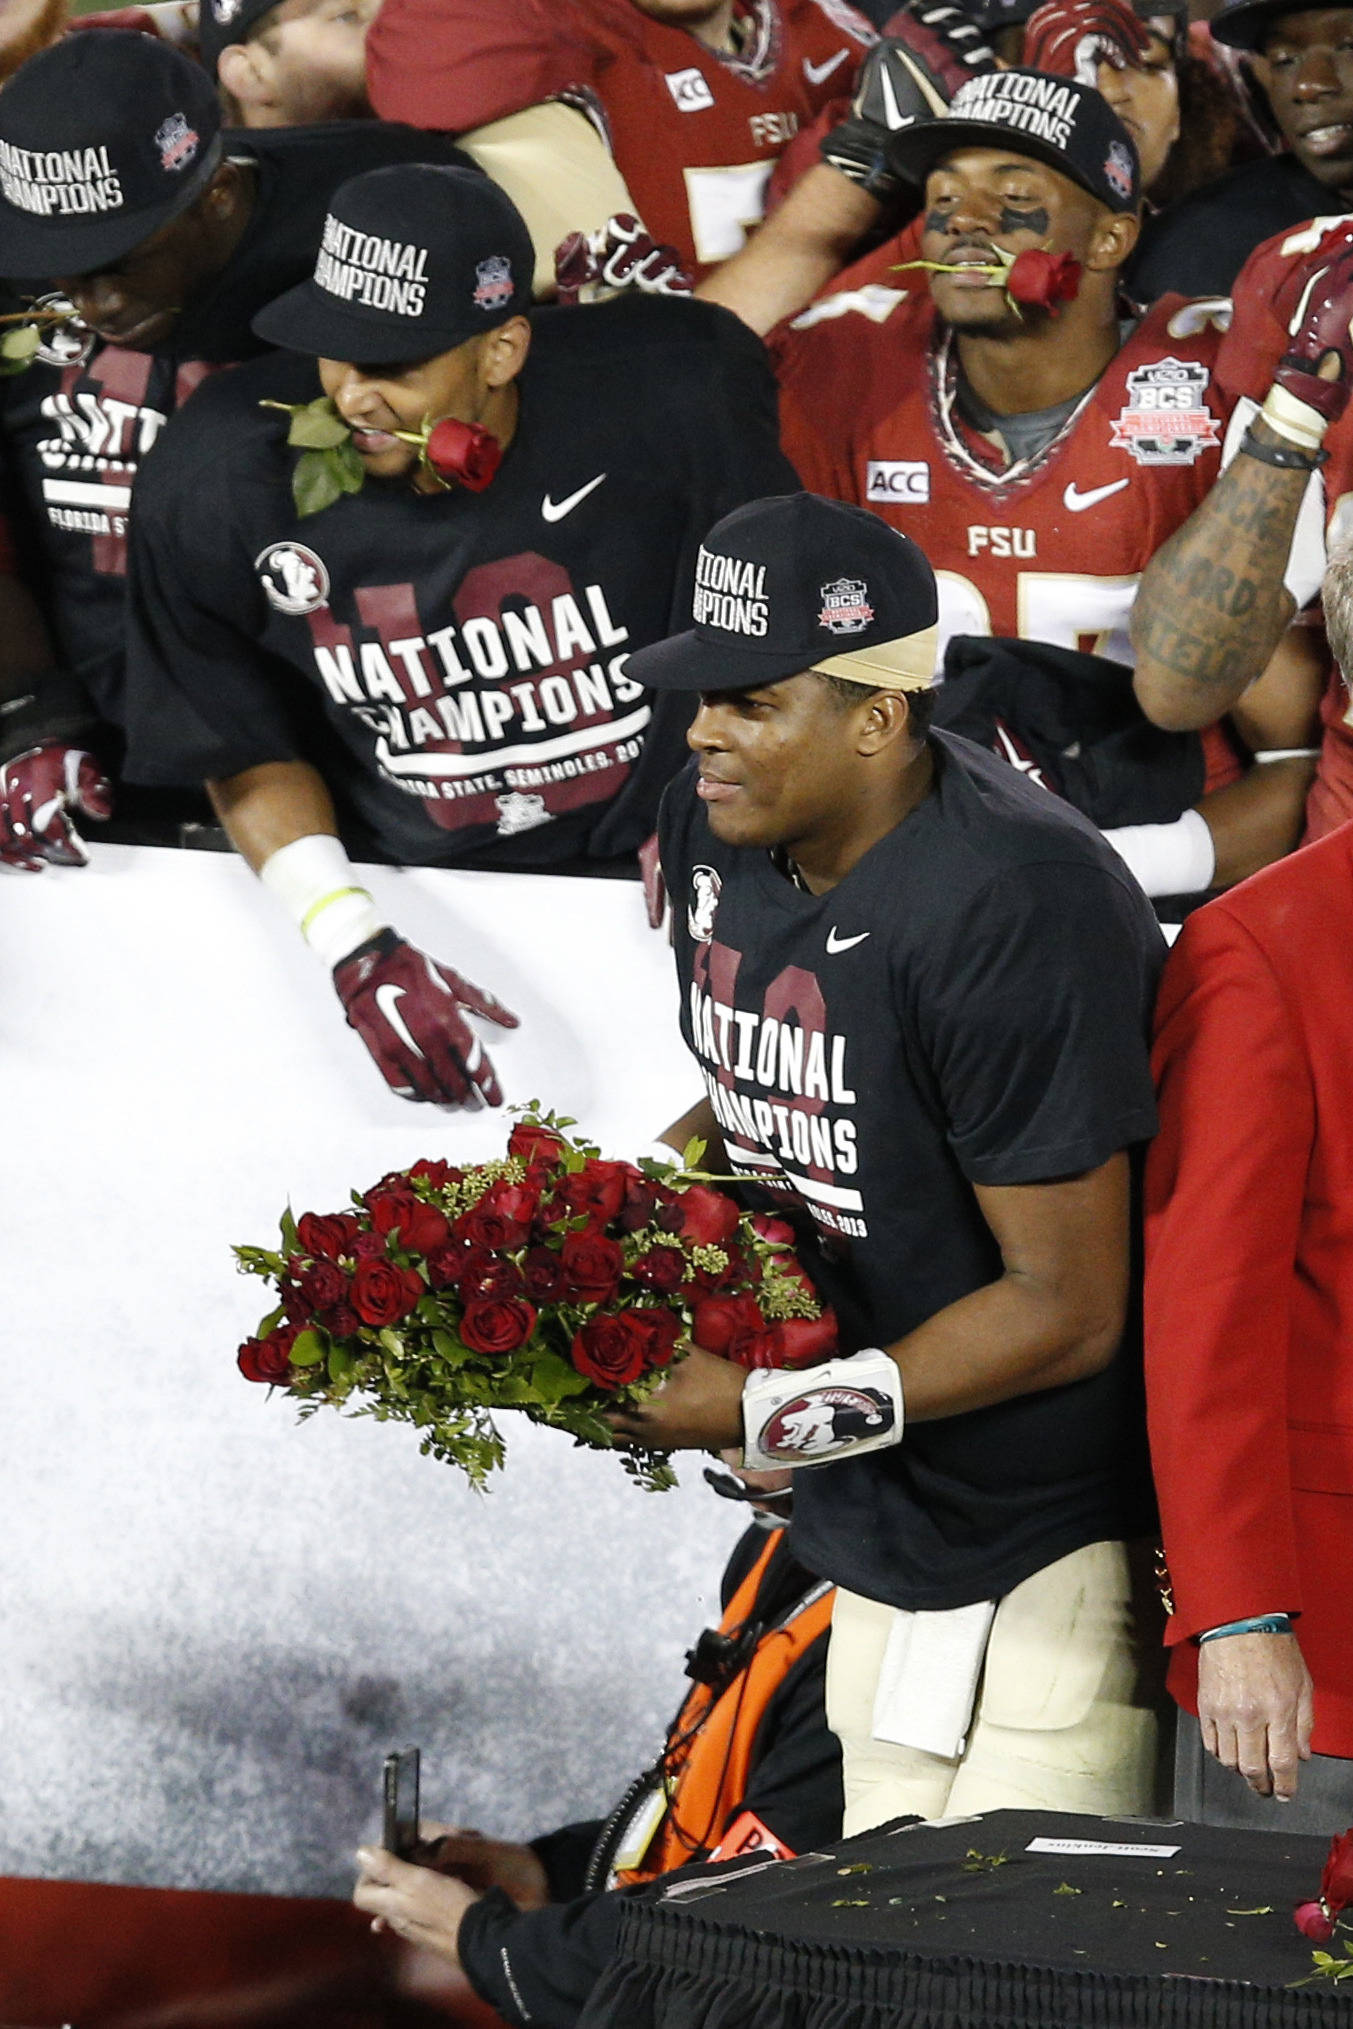 Jan 6, 2014; Pasadena, CA, USA; Florida State Seminoles quarterback Jameis Winston (5) carries roses after defeating the Auburn Tigers 34-31 in the 2014 BCS National Championship game at the Rose Bowl.  Mandatory Credit: Kelvin Kuo-USA TODAY Sports